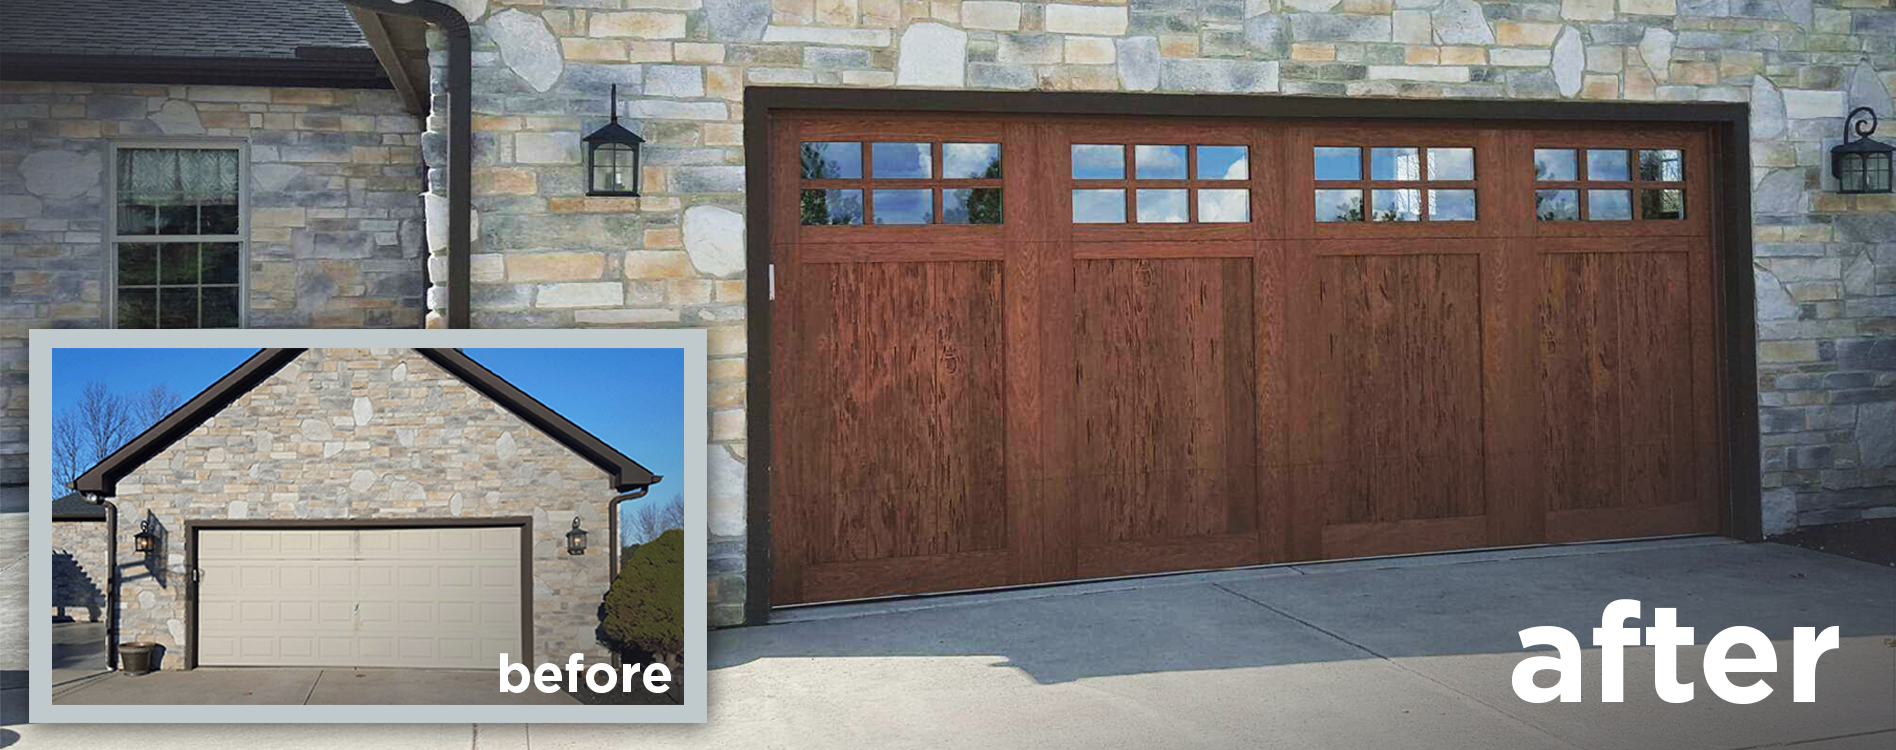 Faux Wood Garage Doors That Look Realistic New Garage Doors Deluxe Door Systems Faux Wood Garage Door Wood Garage Doors Garage Door Styles